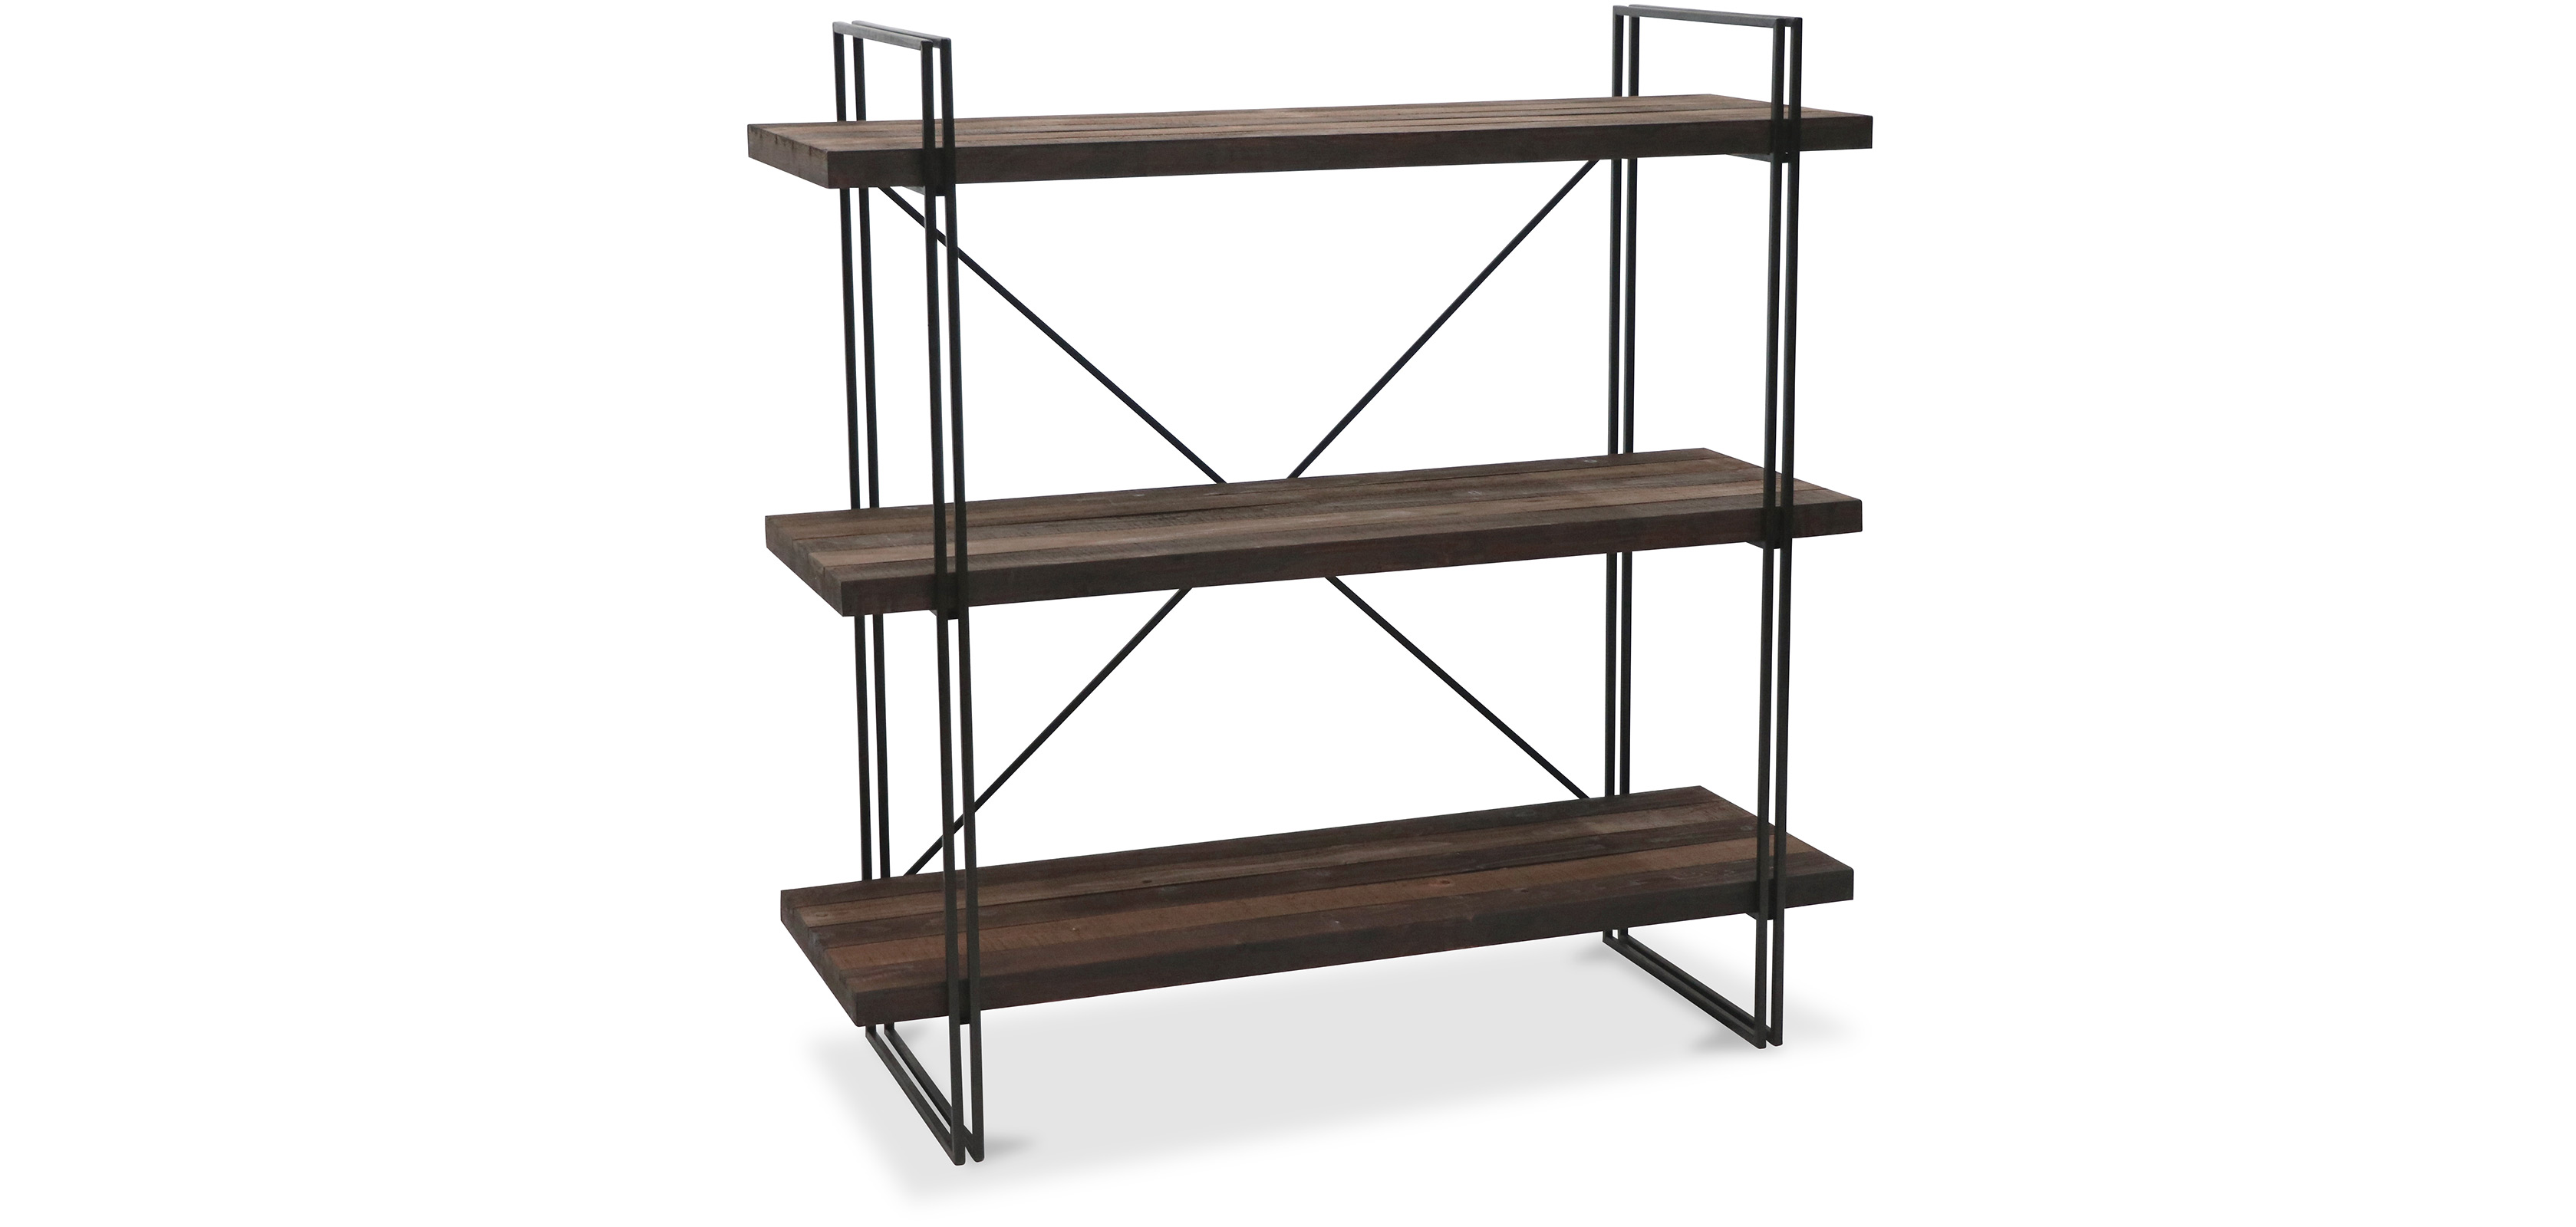 bookcase trung metal by partition bookcases wood dfsfdsfd on discover about furniture wall pinterest steel ideas pin